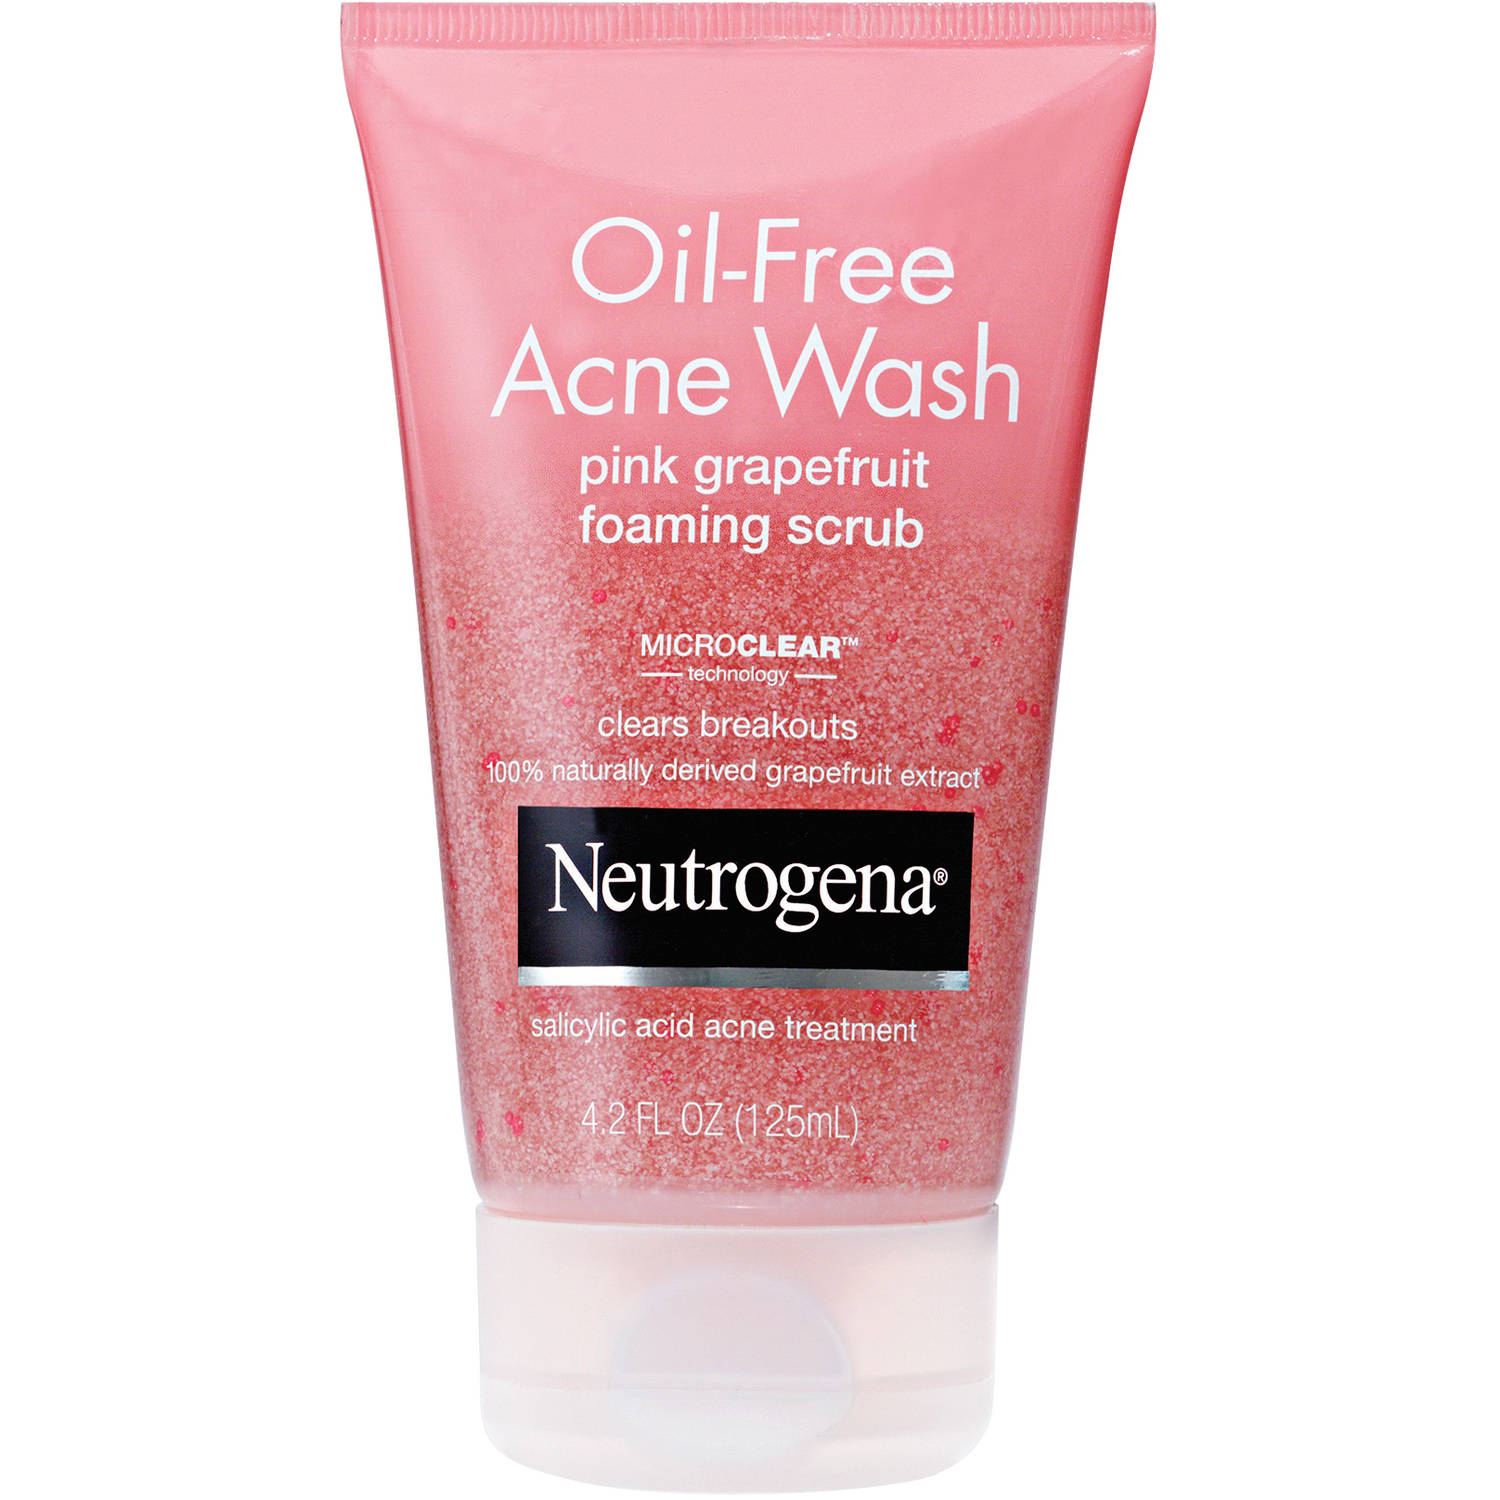 Neutrogena Oil-Free Acne Wash Pink Grapefruit Foaming Scrub, 4.2 fl oz